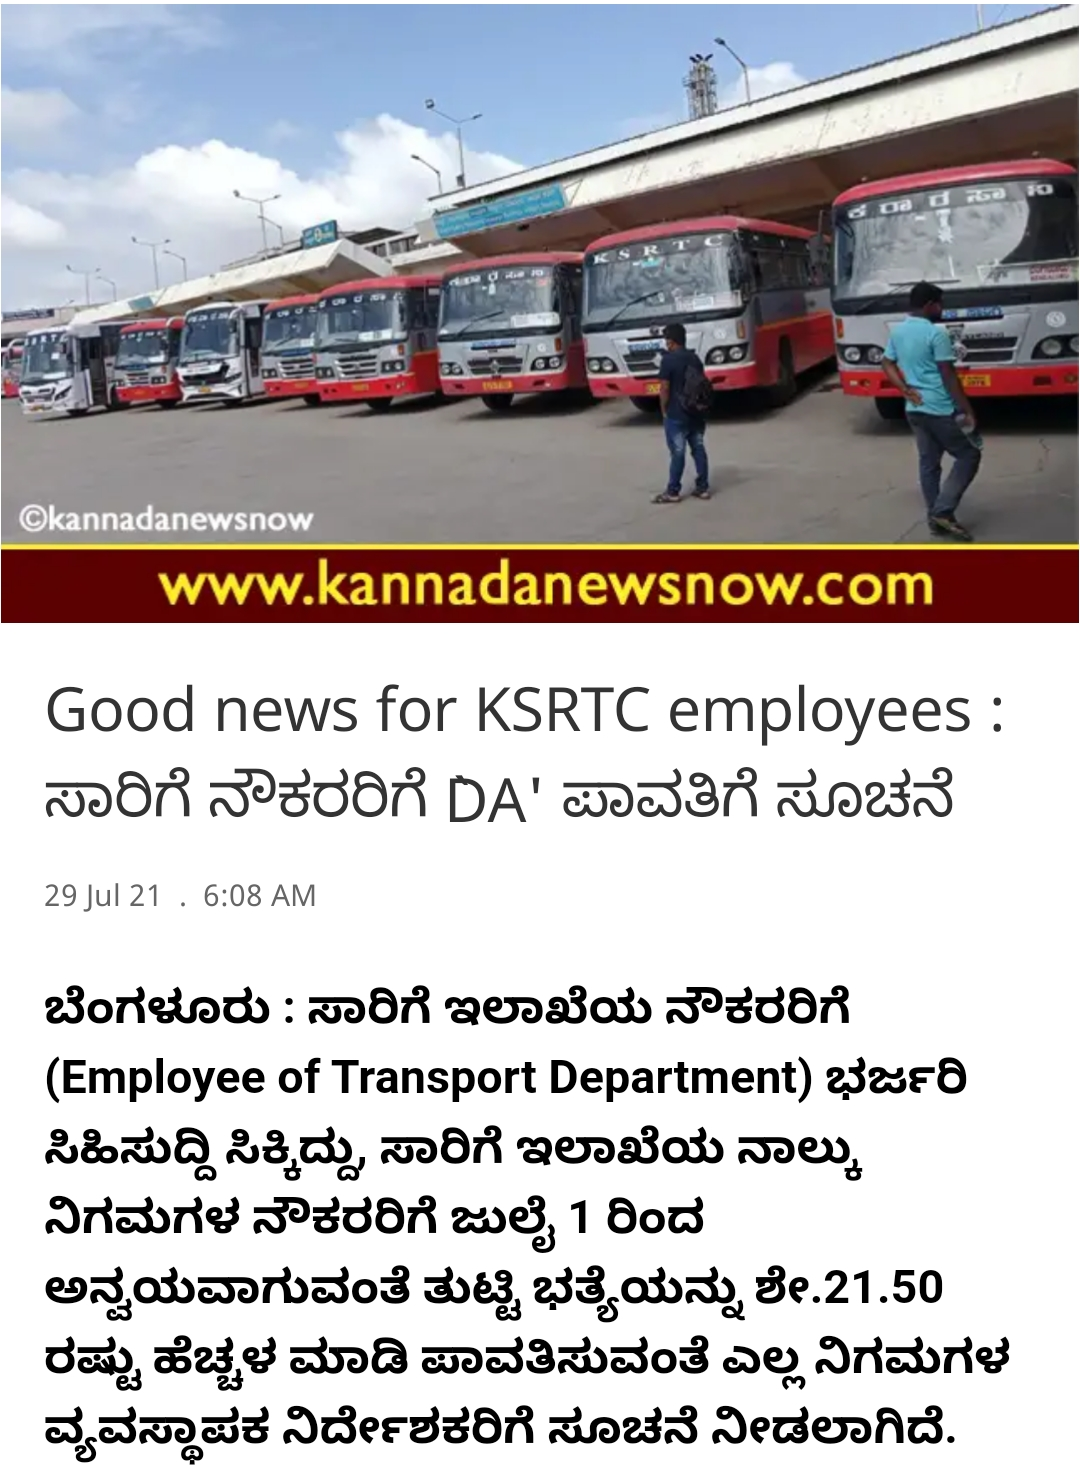 KSRTC Employees: Notice of `DA 'payment to Transport Employees